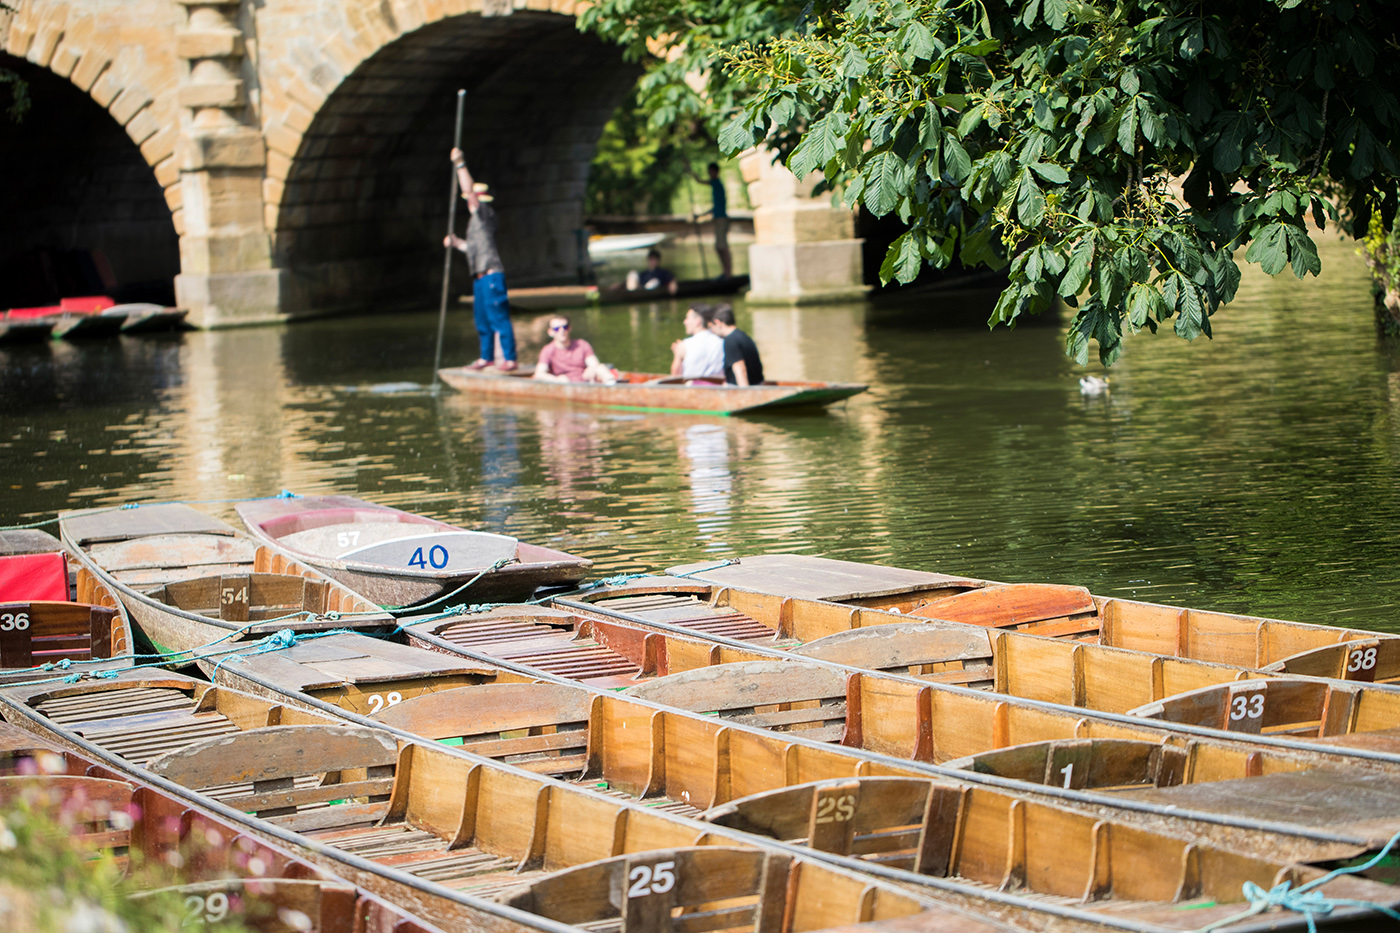 People punting on the river in Oxford, with boats in the foreground and Magdalen Bridge in the distance